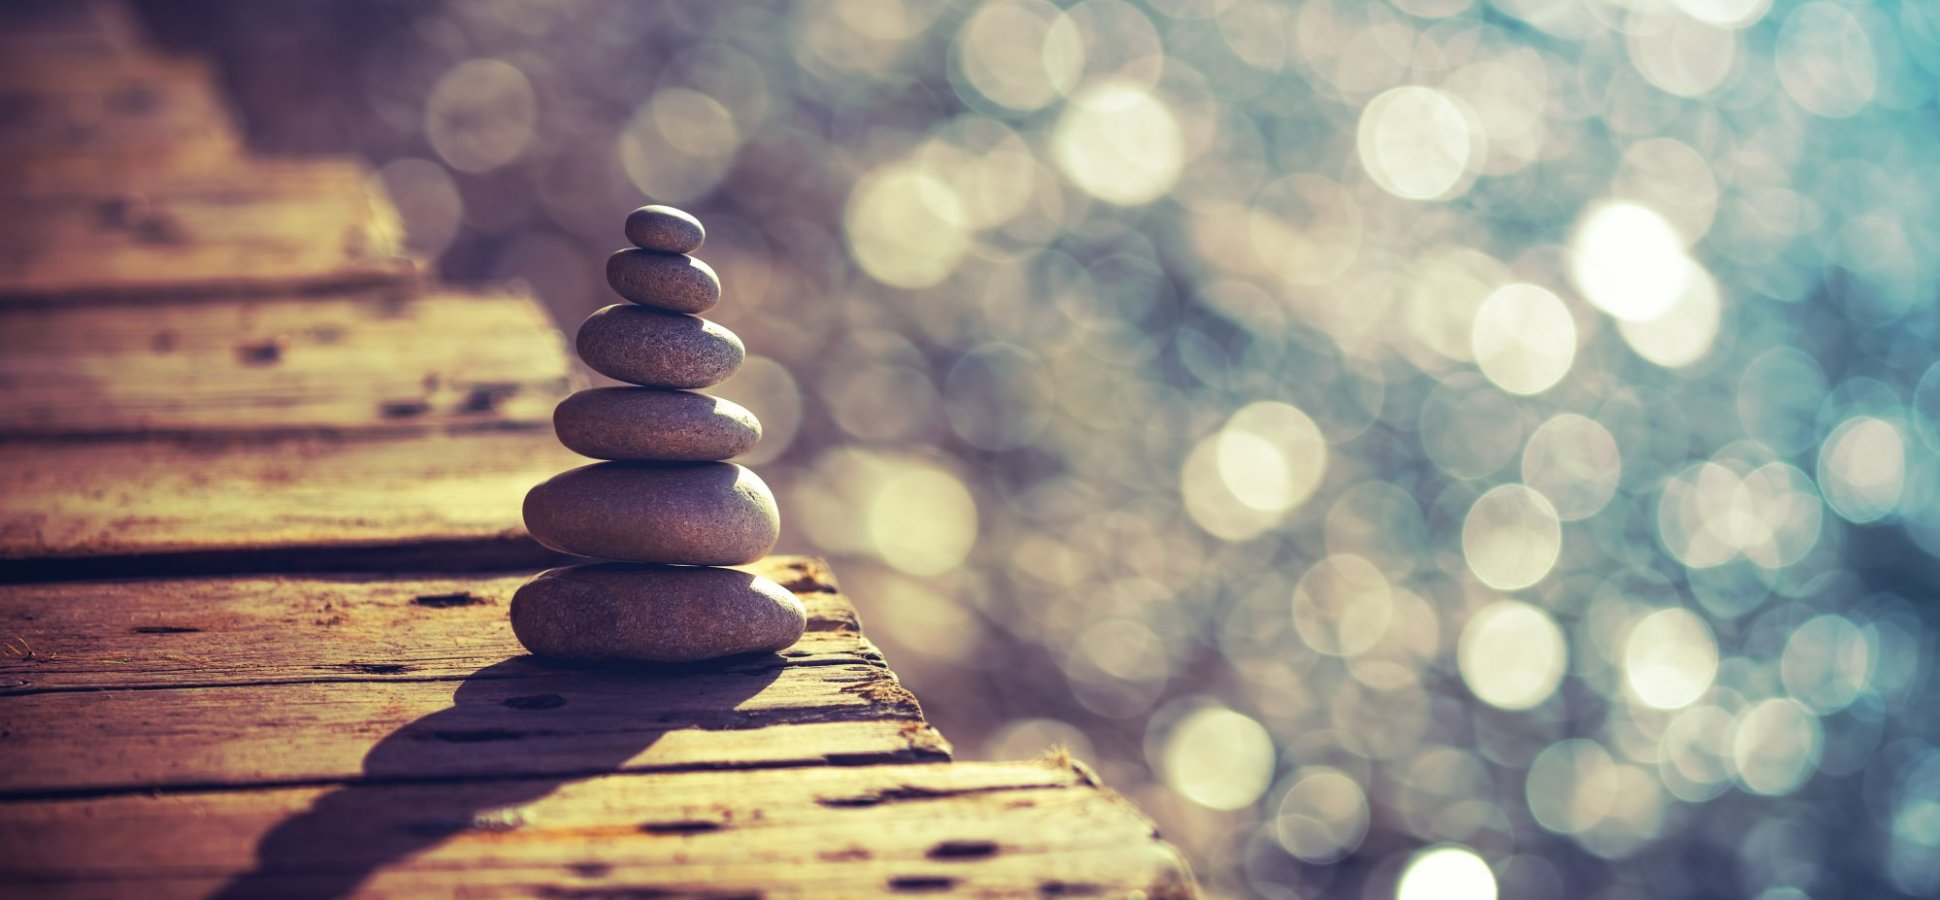 Mindfulness Is Working for You. How to Make It Work at the Office